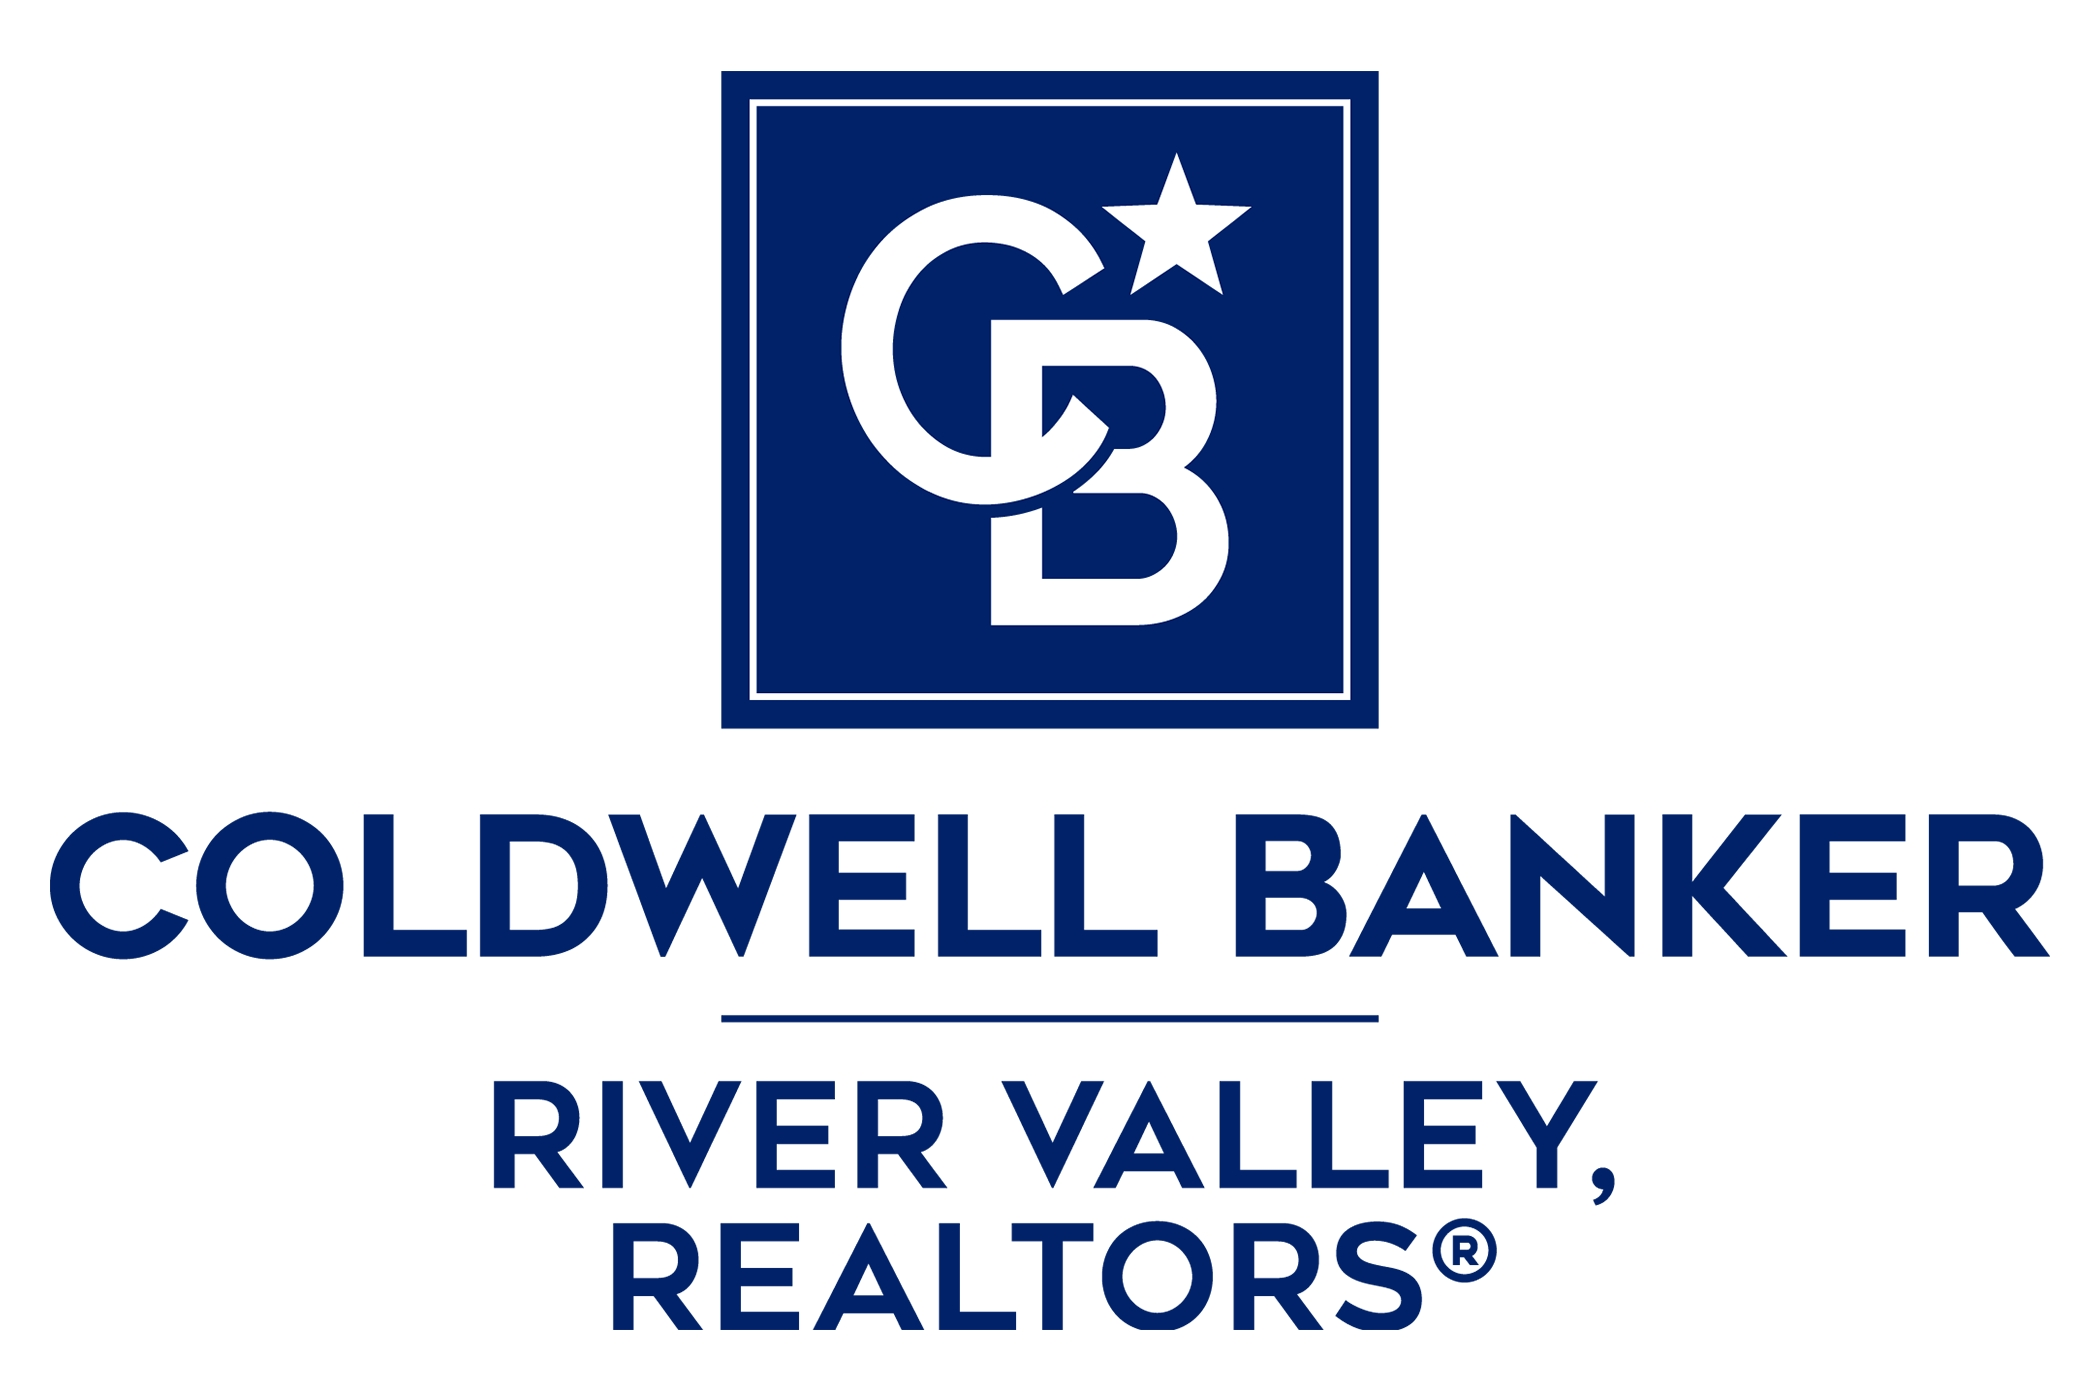 Catherine Fox - Coldwell Banker River Valley, REALTORS Logo